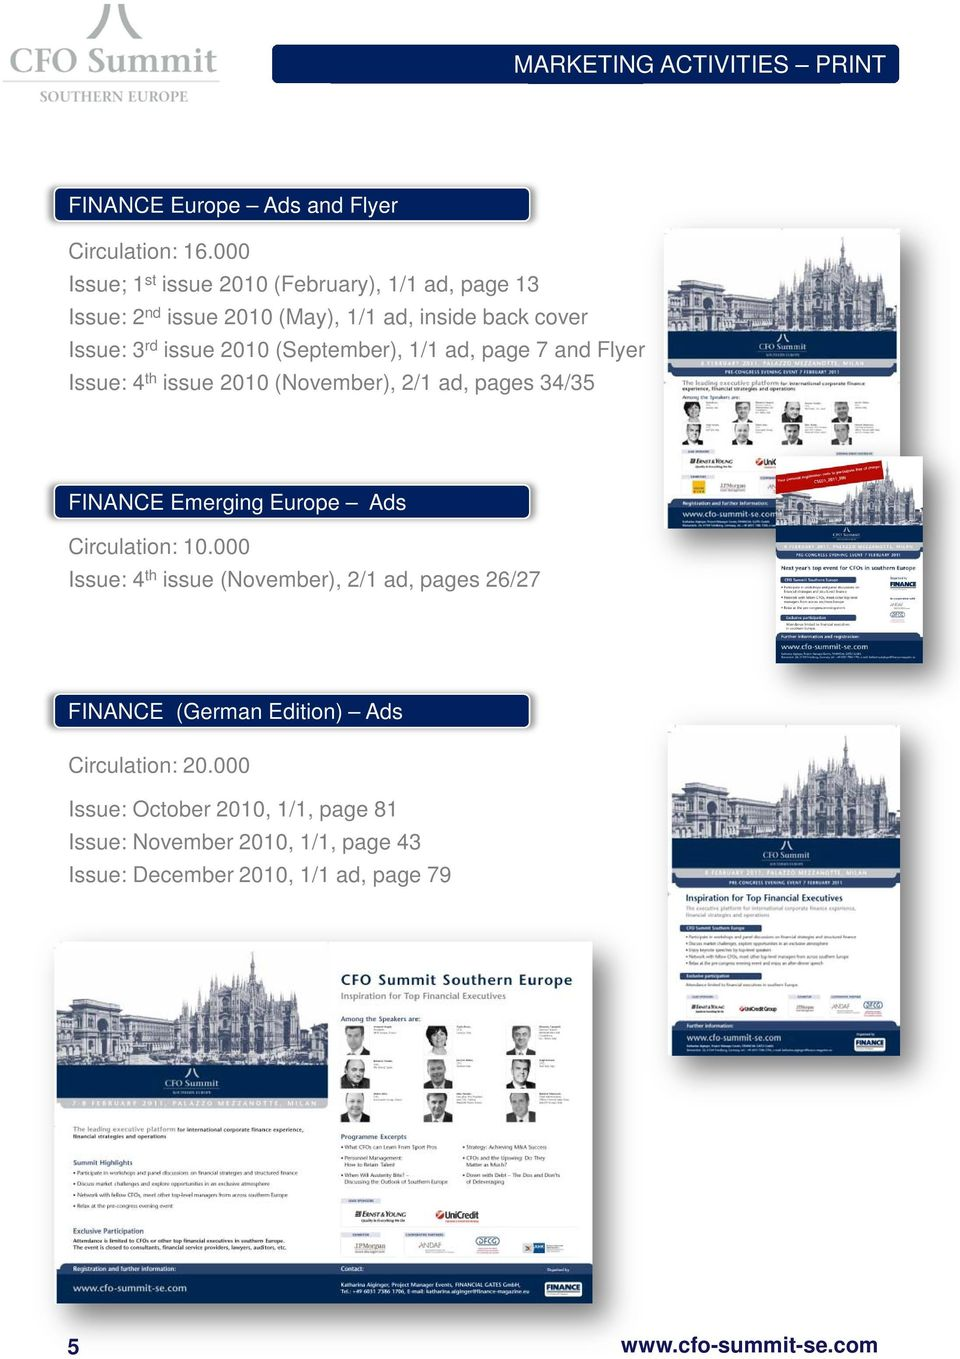 (September), 1/1 ad, page 7 and Flyer Issue: 4 th issue 2010 (November), 2/1 ad, pages 34/35 FINANCE Emerging Europe Ads Circulation: 10.